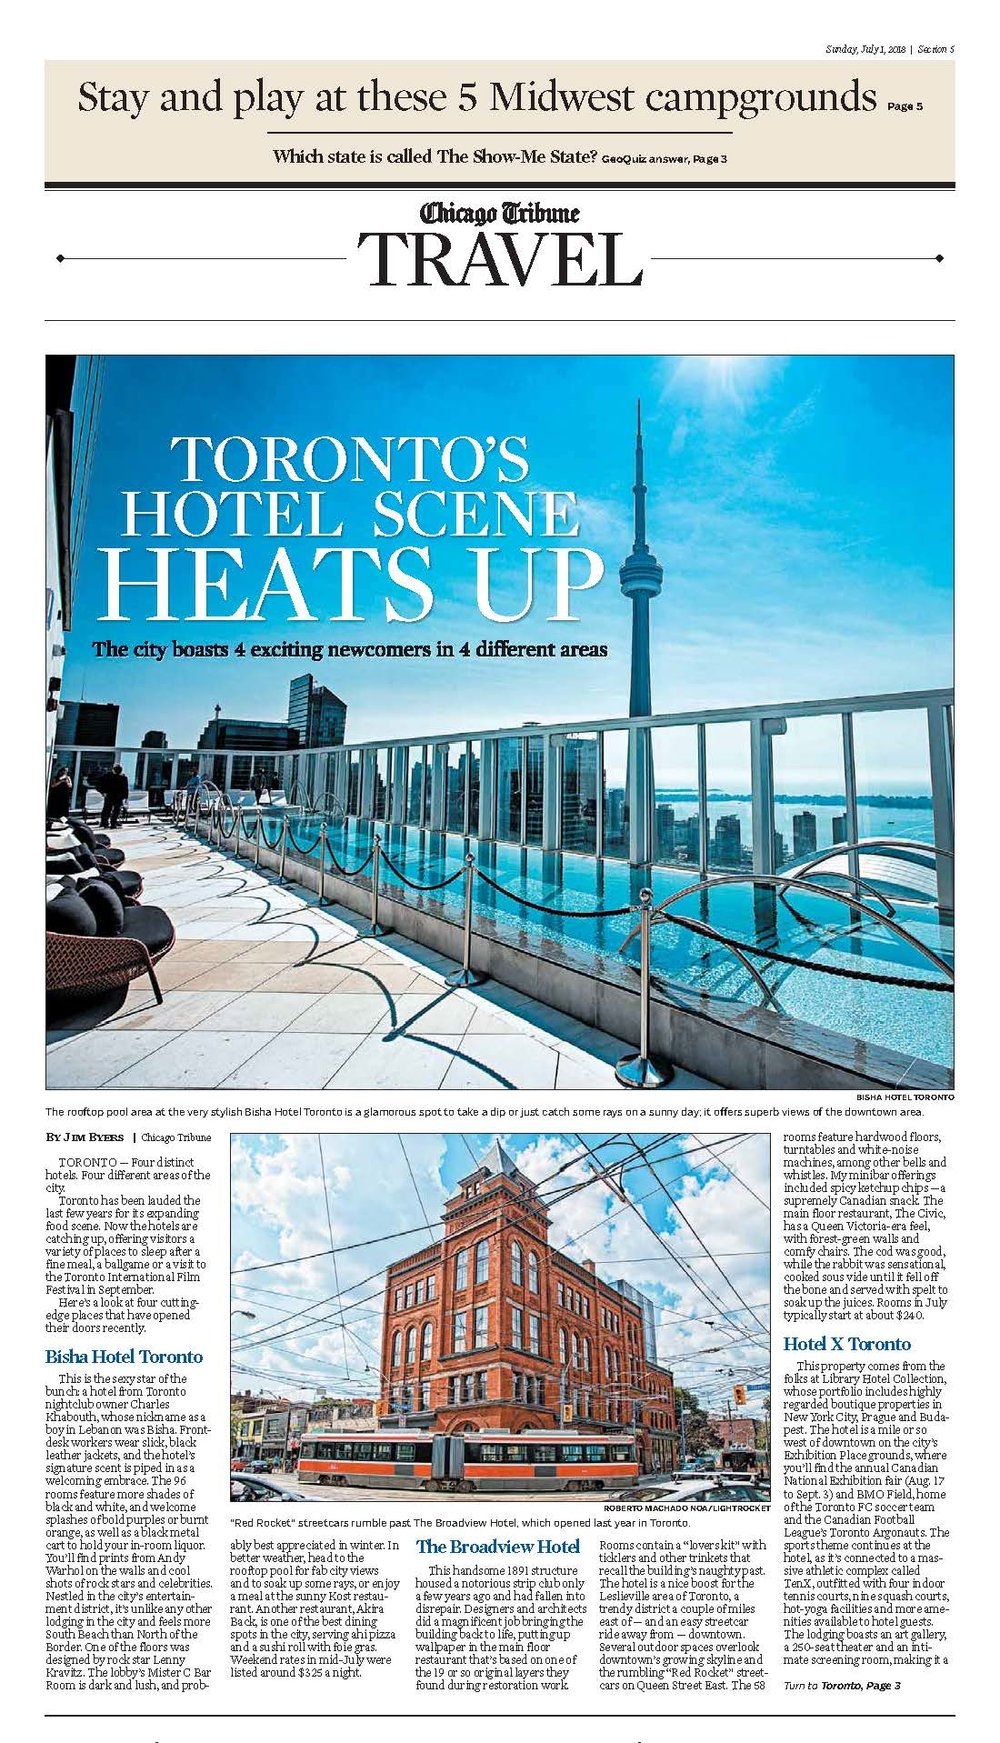 Toronto's Hotel Scene Heats Up<br>CHICAGO TRIBUNE